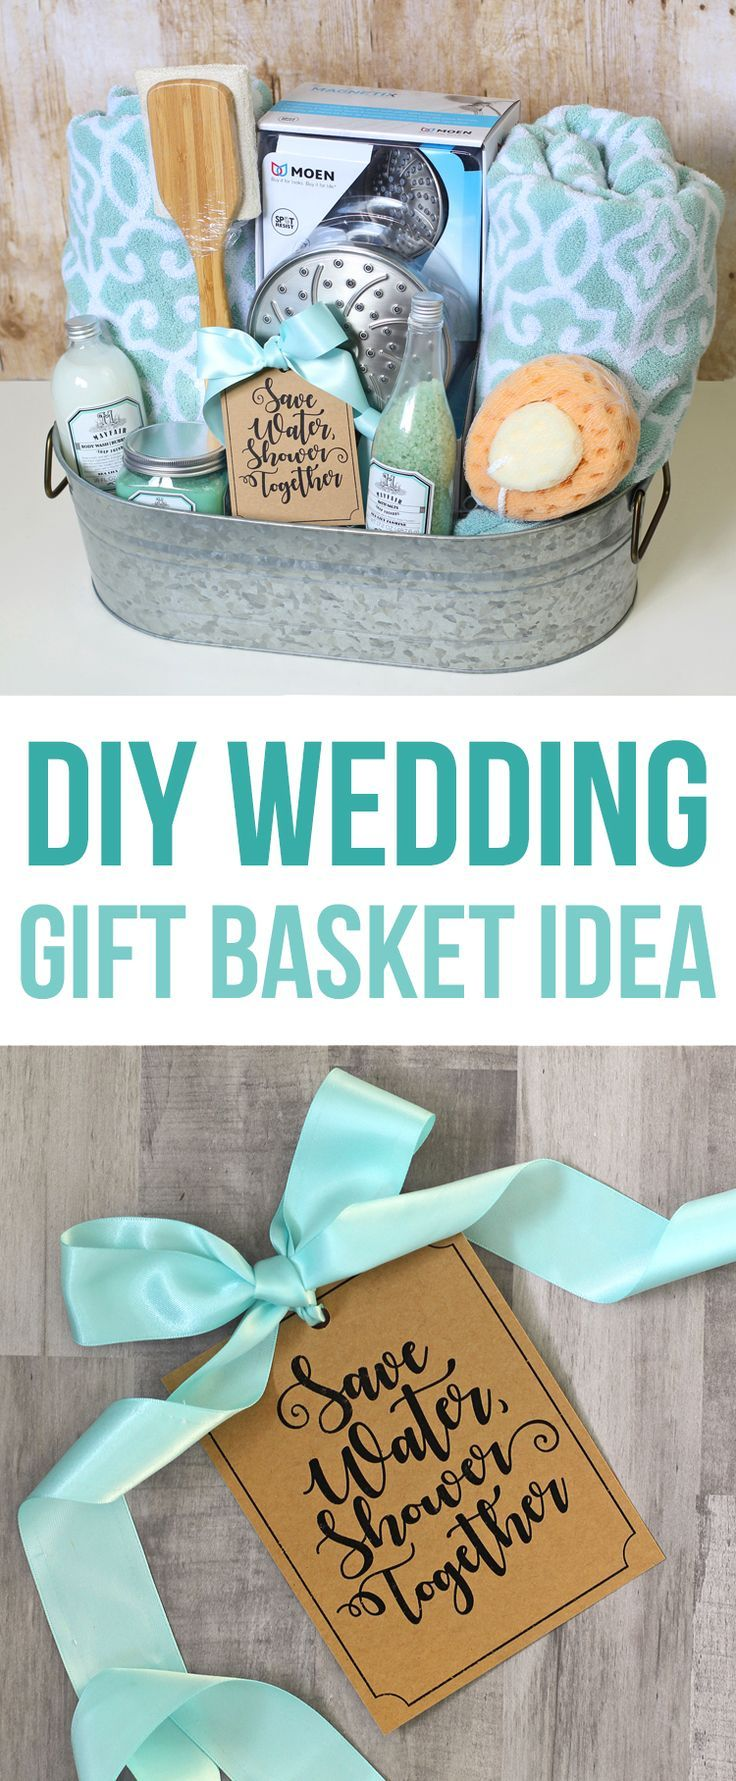 This Diy Wedding Gift Basket Idea Has A Shower Theme And Includes Bath Towels